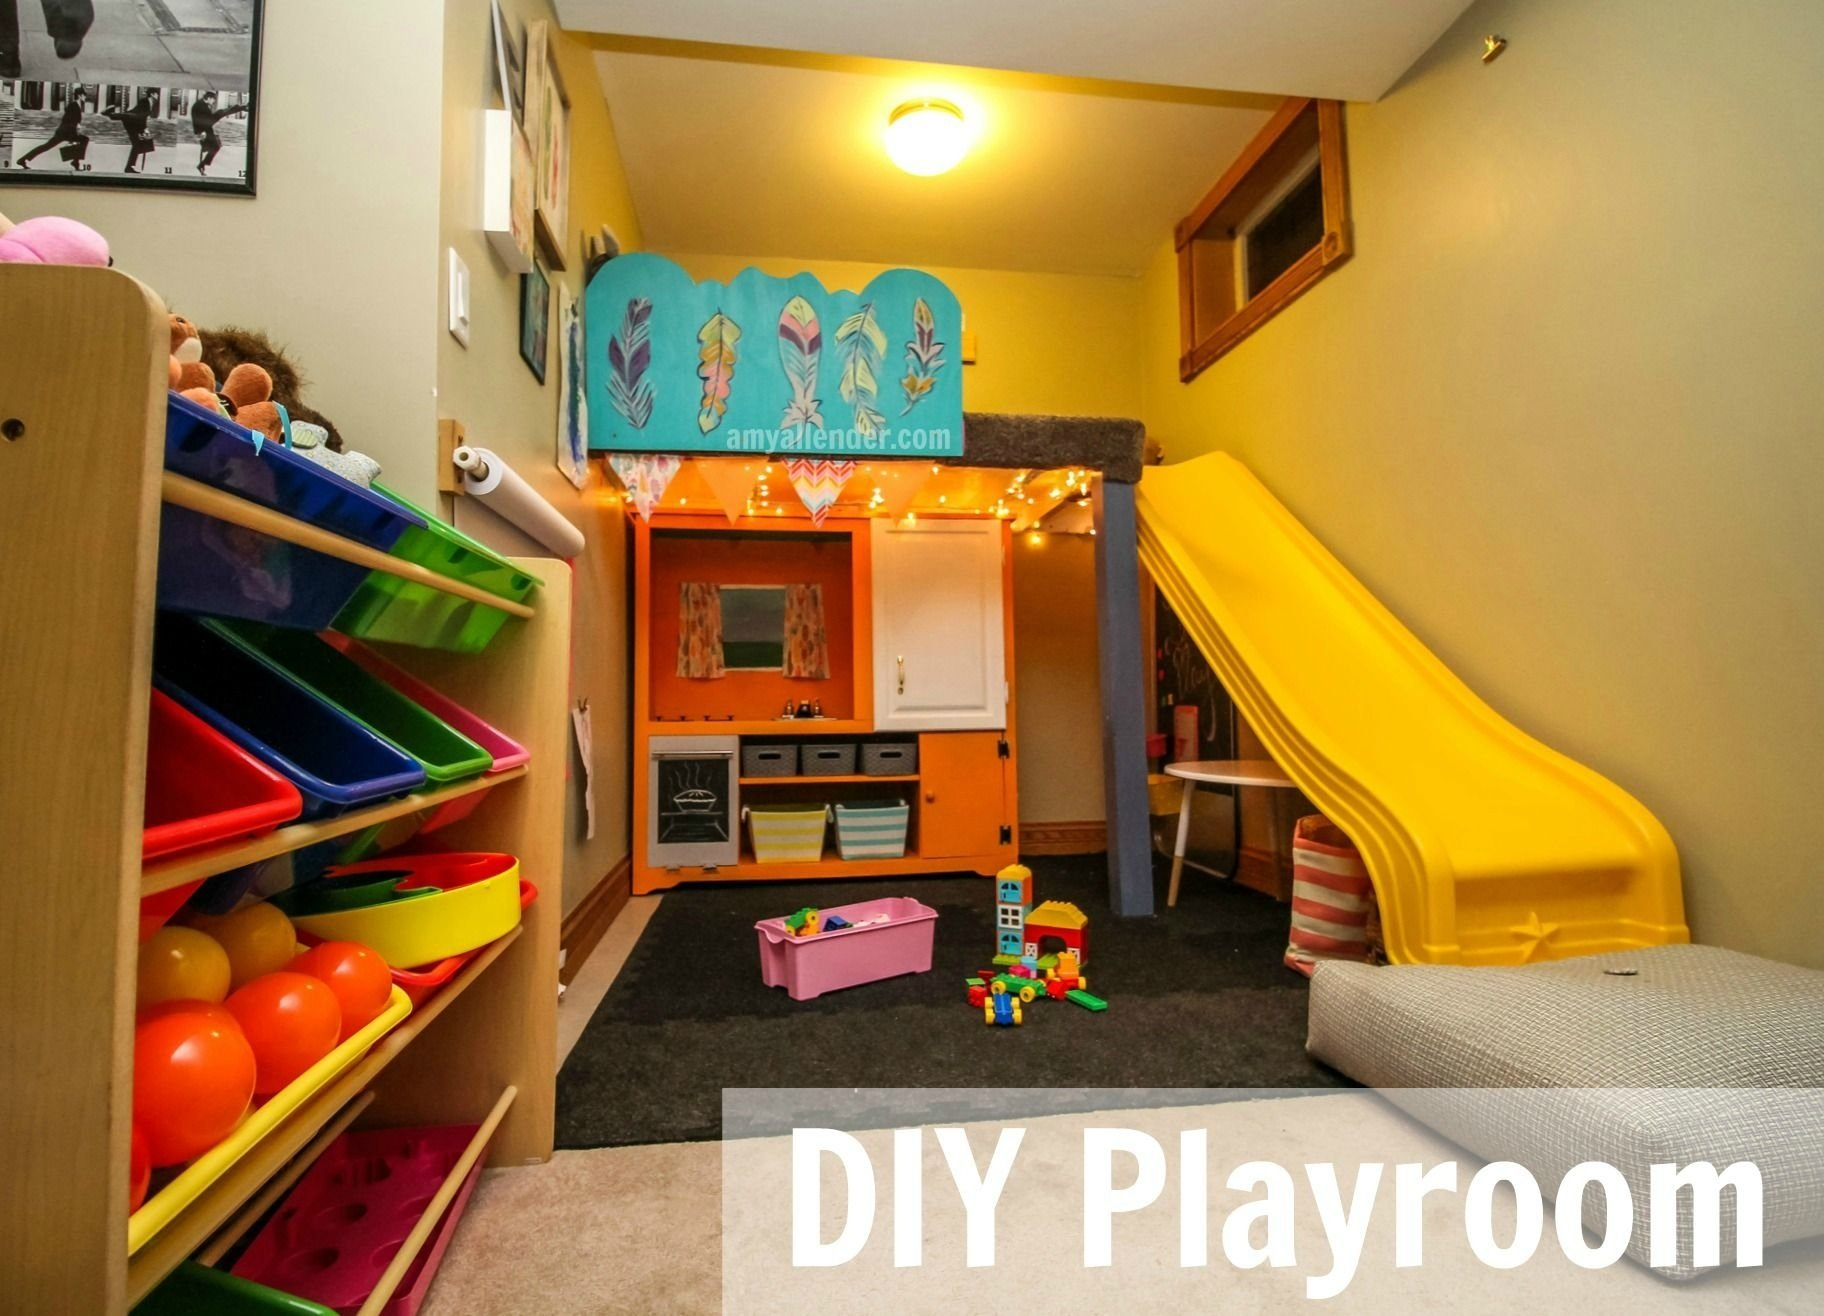 10 Nice Playroom Ideas For Small Spaces turn a small space into a fun organized playroom with these budget 2020